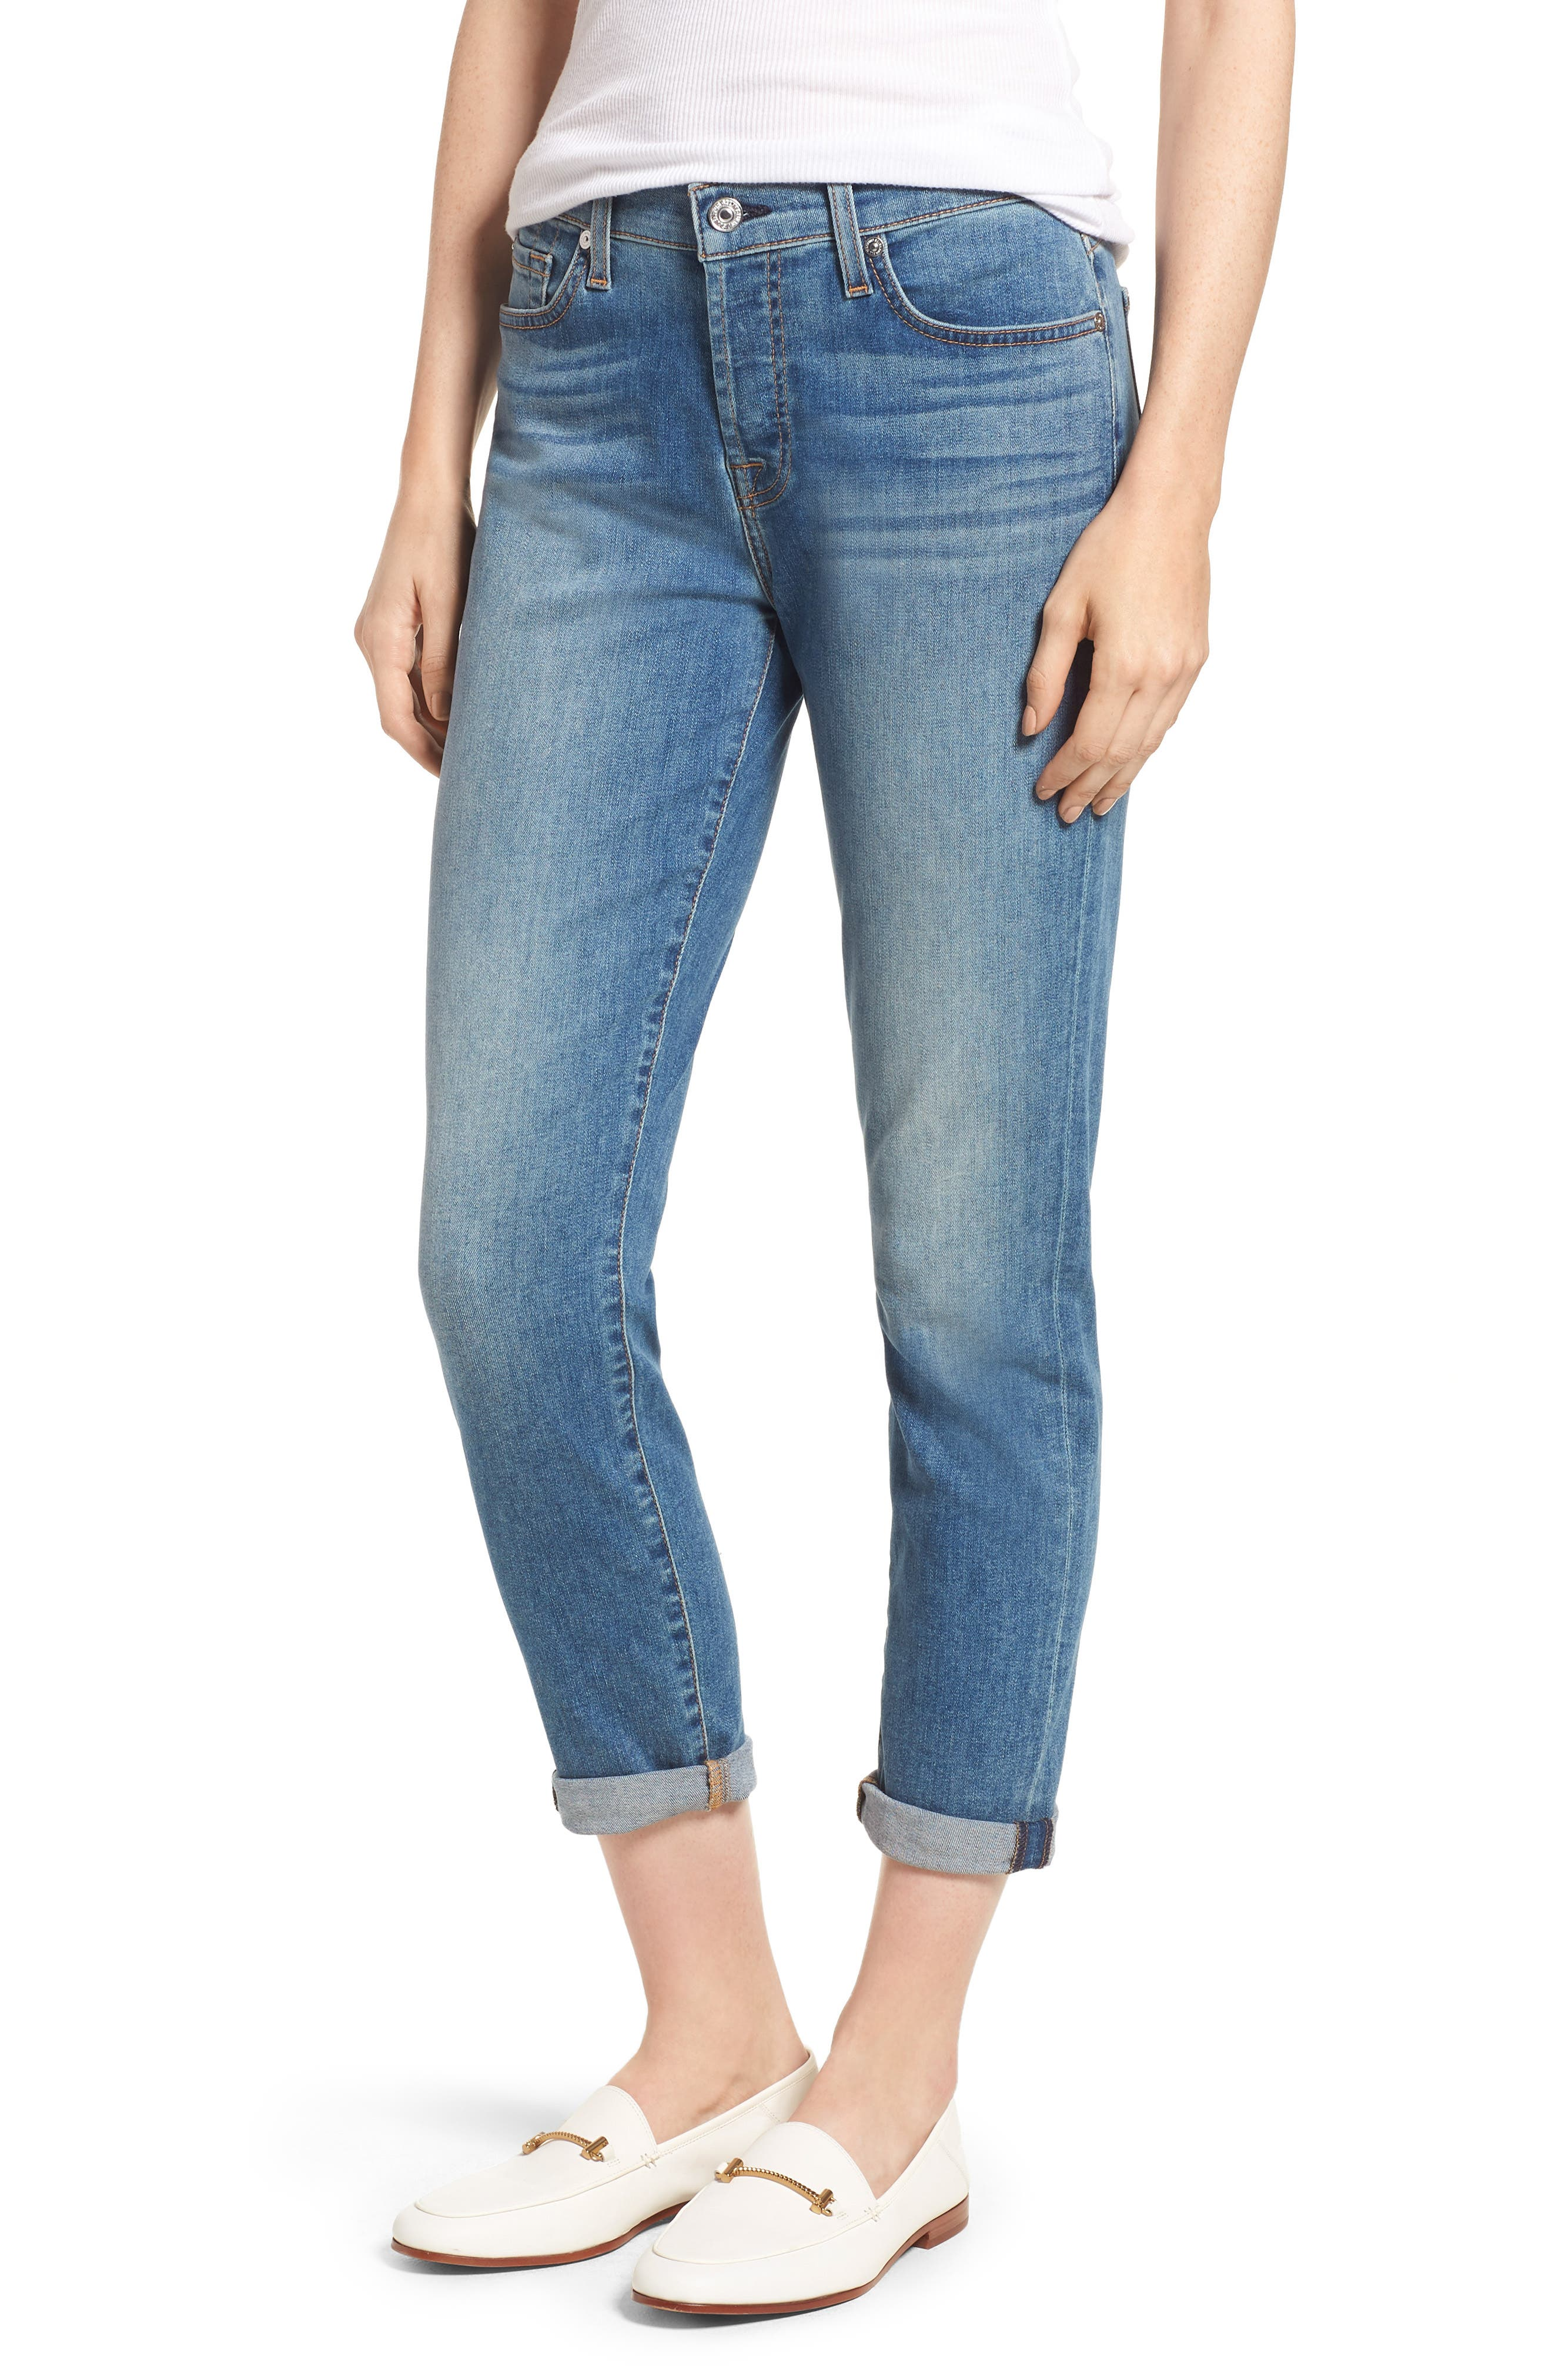 7 FOR ALL MANKIND<SUP>®</SUP>, Josefina Crop Boyfriend Jeans, Main thumbnail 1, color, GILDED DAWN